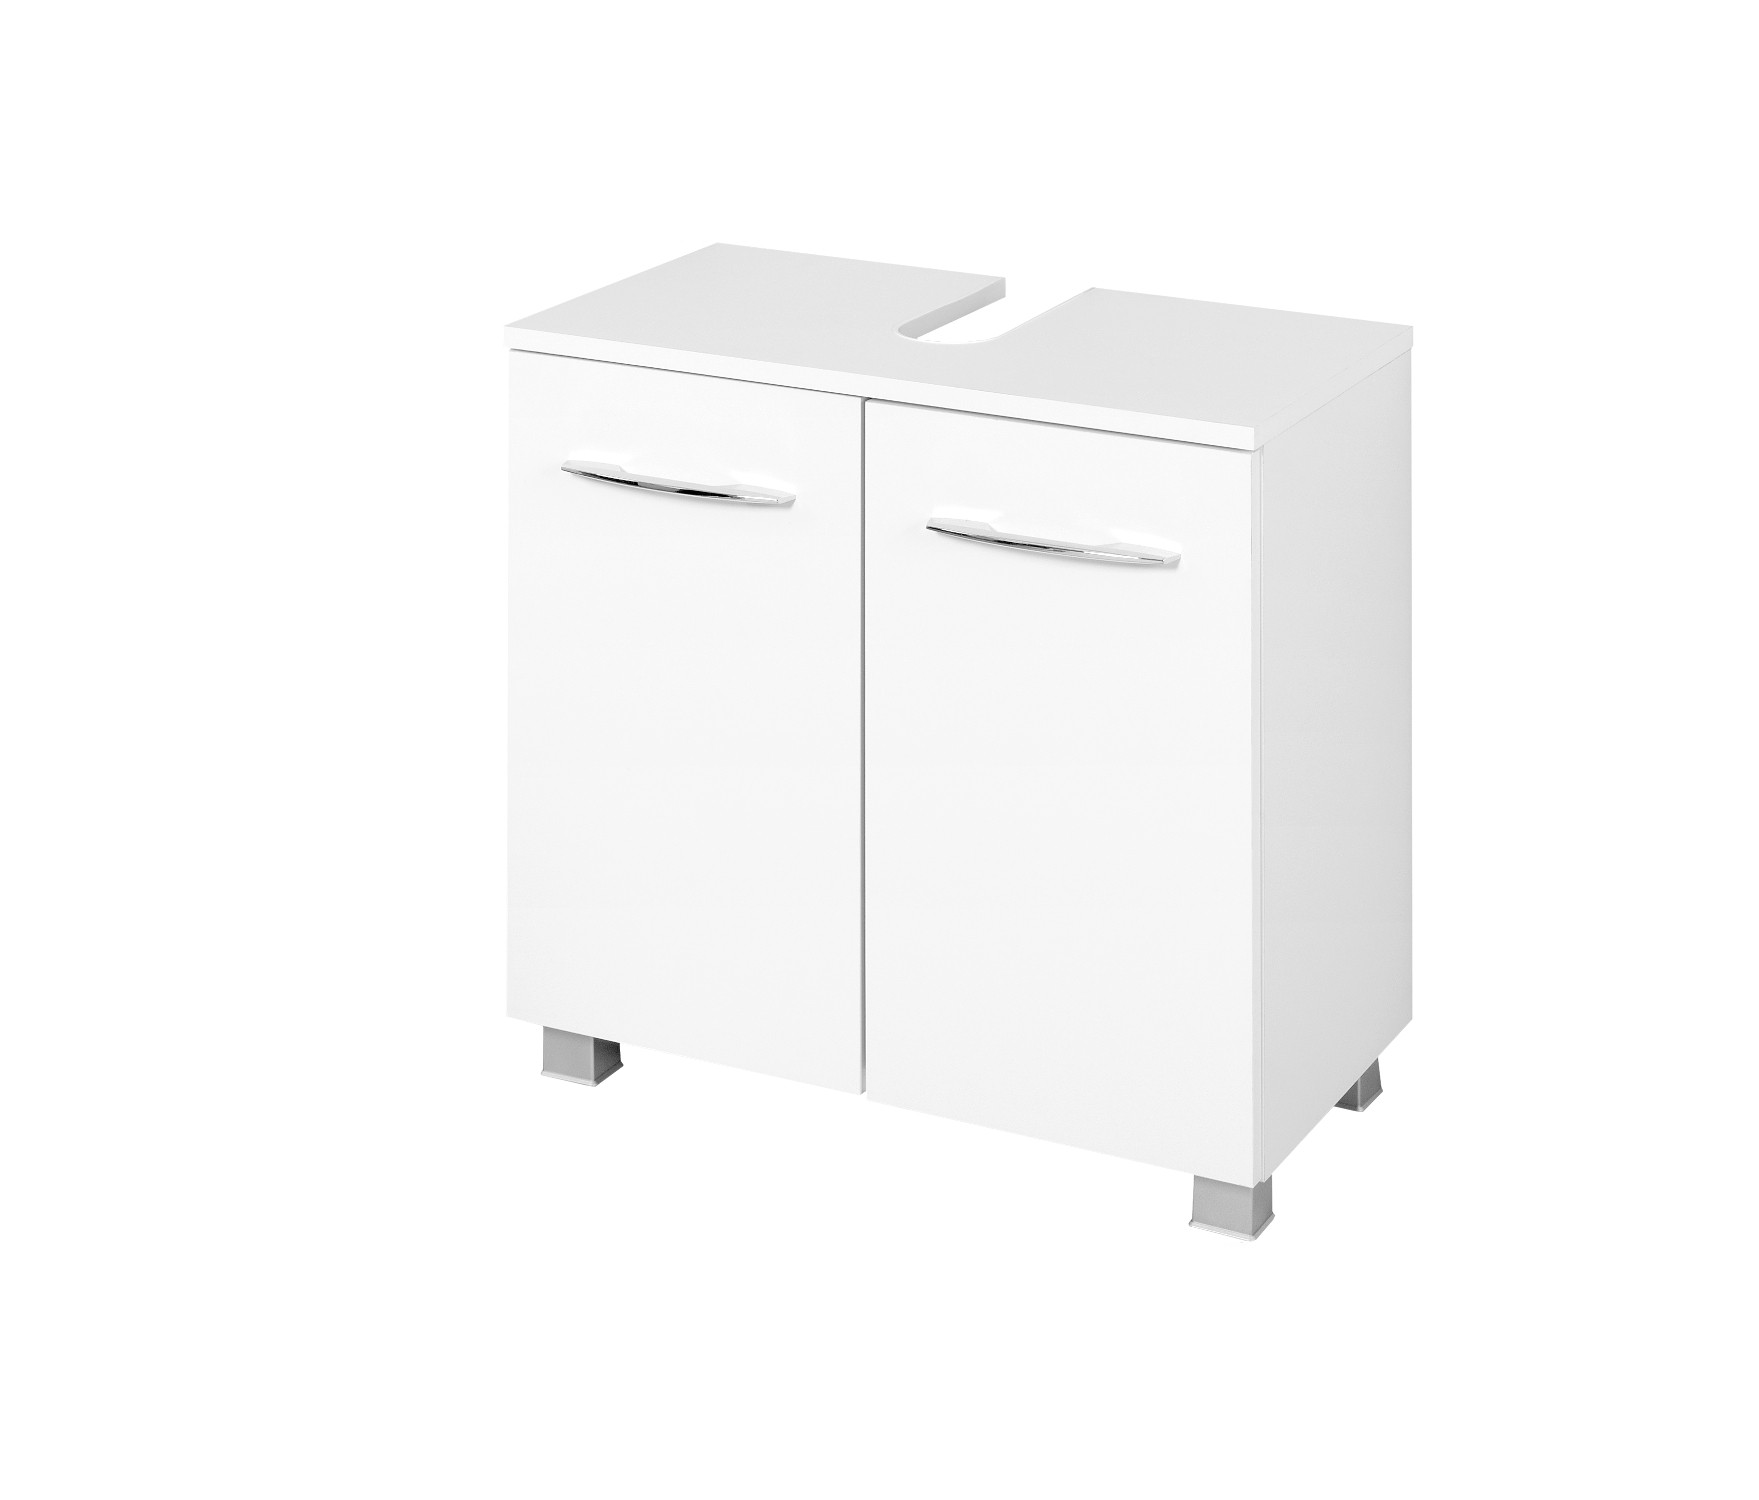 waschbeckenunterschrank portofino waschtisch unterschrank badschrank 60 cm weiss 4250163751639. Black Bedroom Furniture Sets. Home Design Ideas